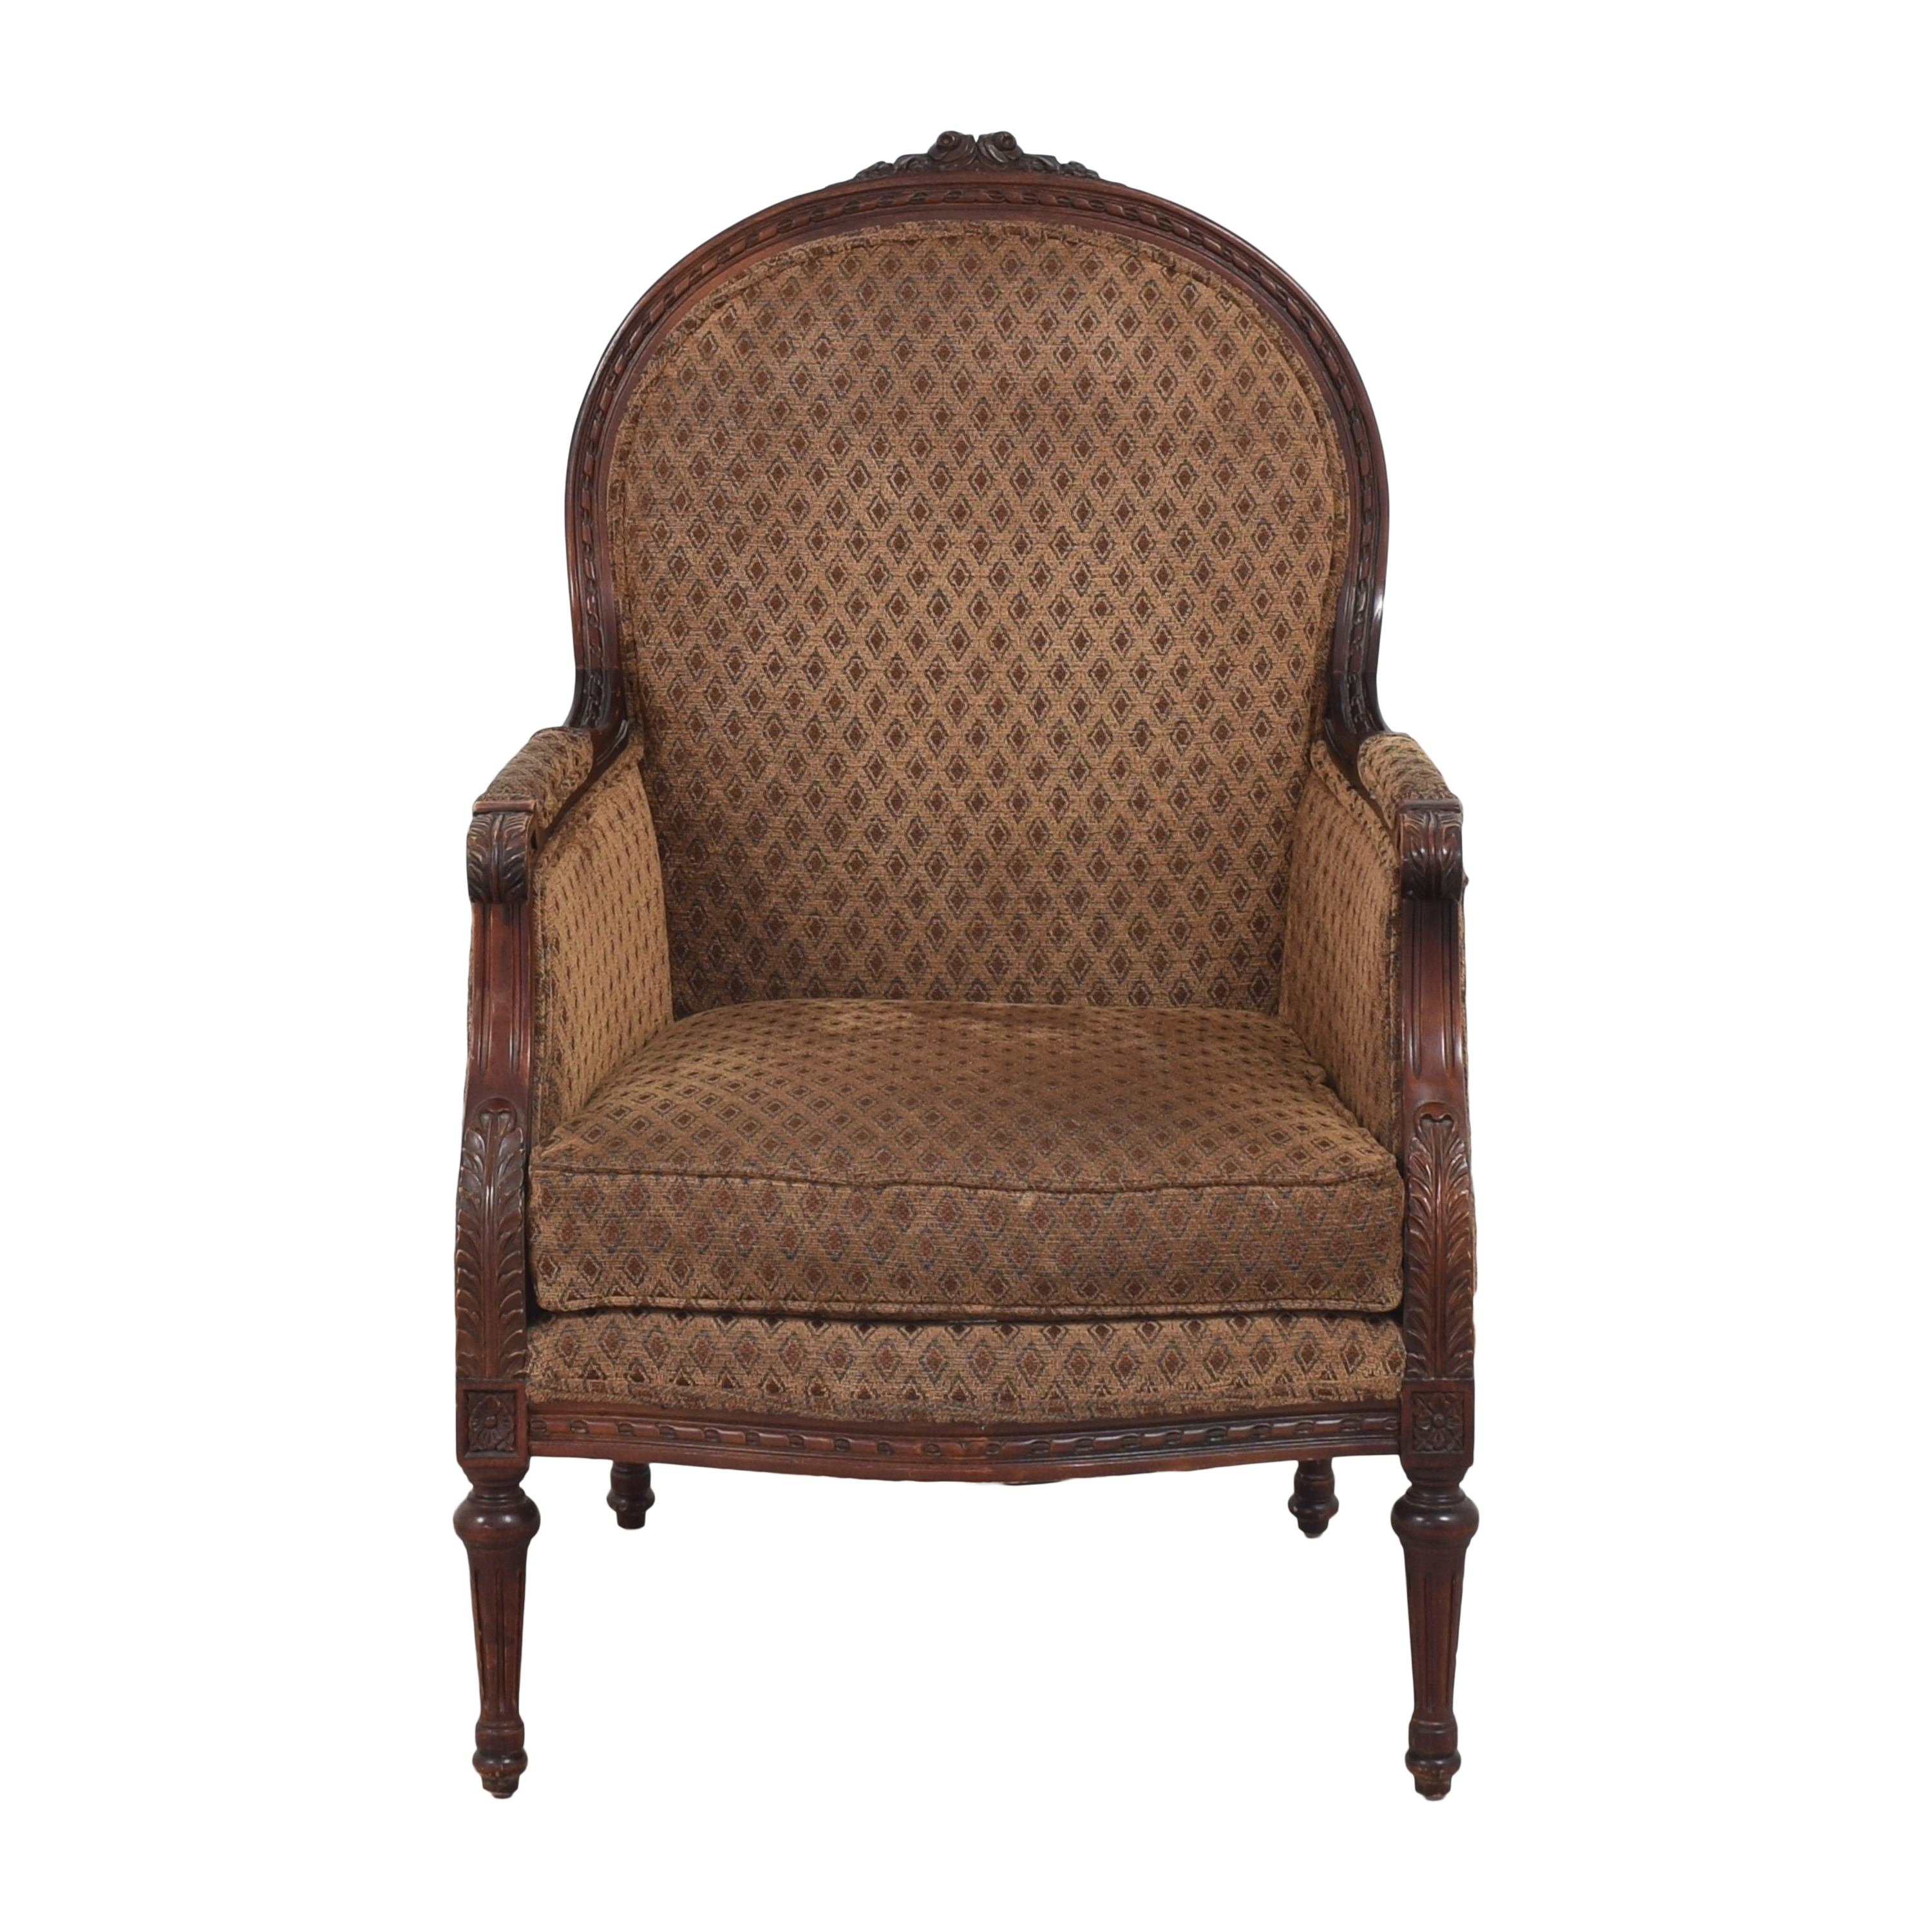 Thomasville Thomasville Upholstered Chair on sale